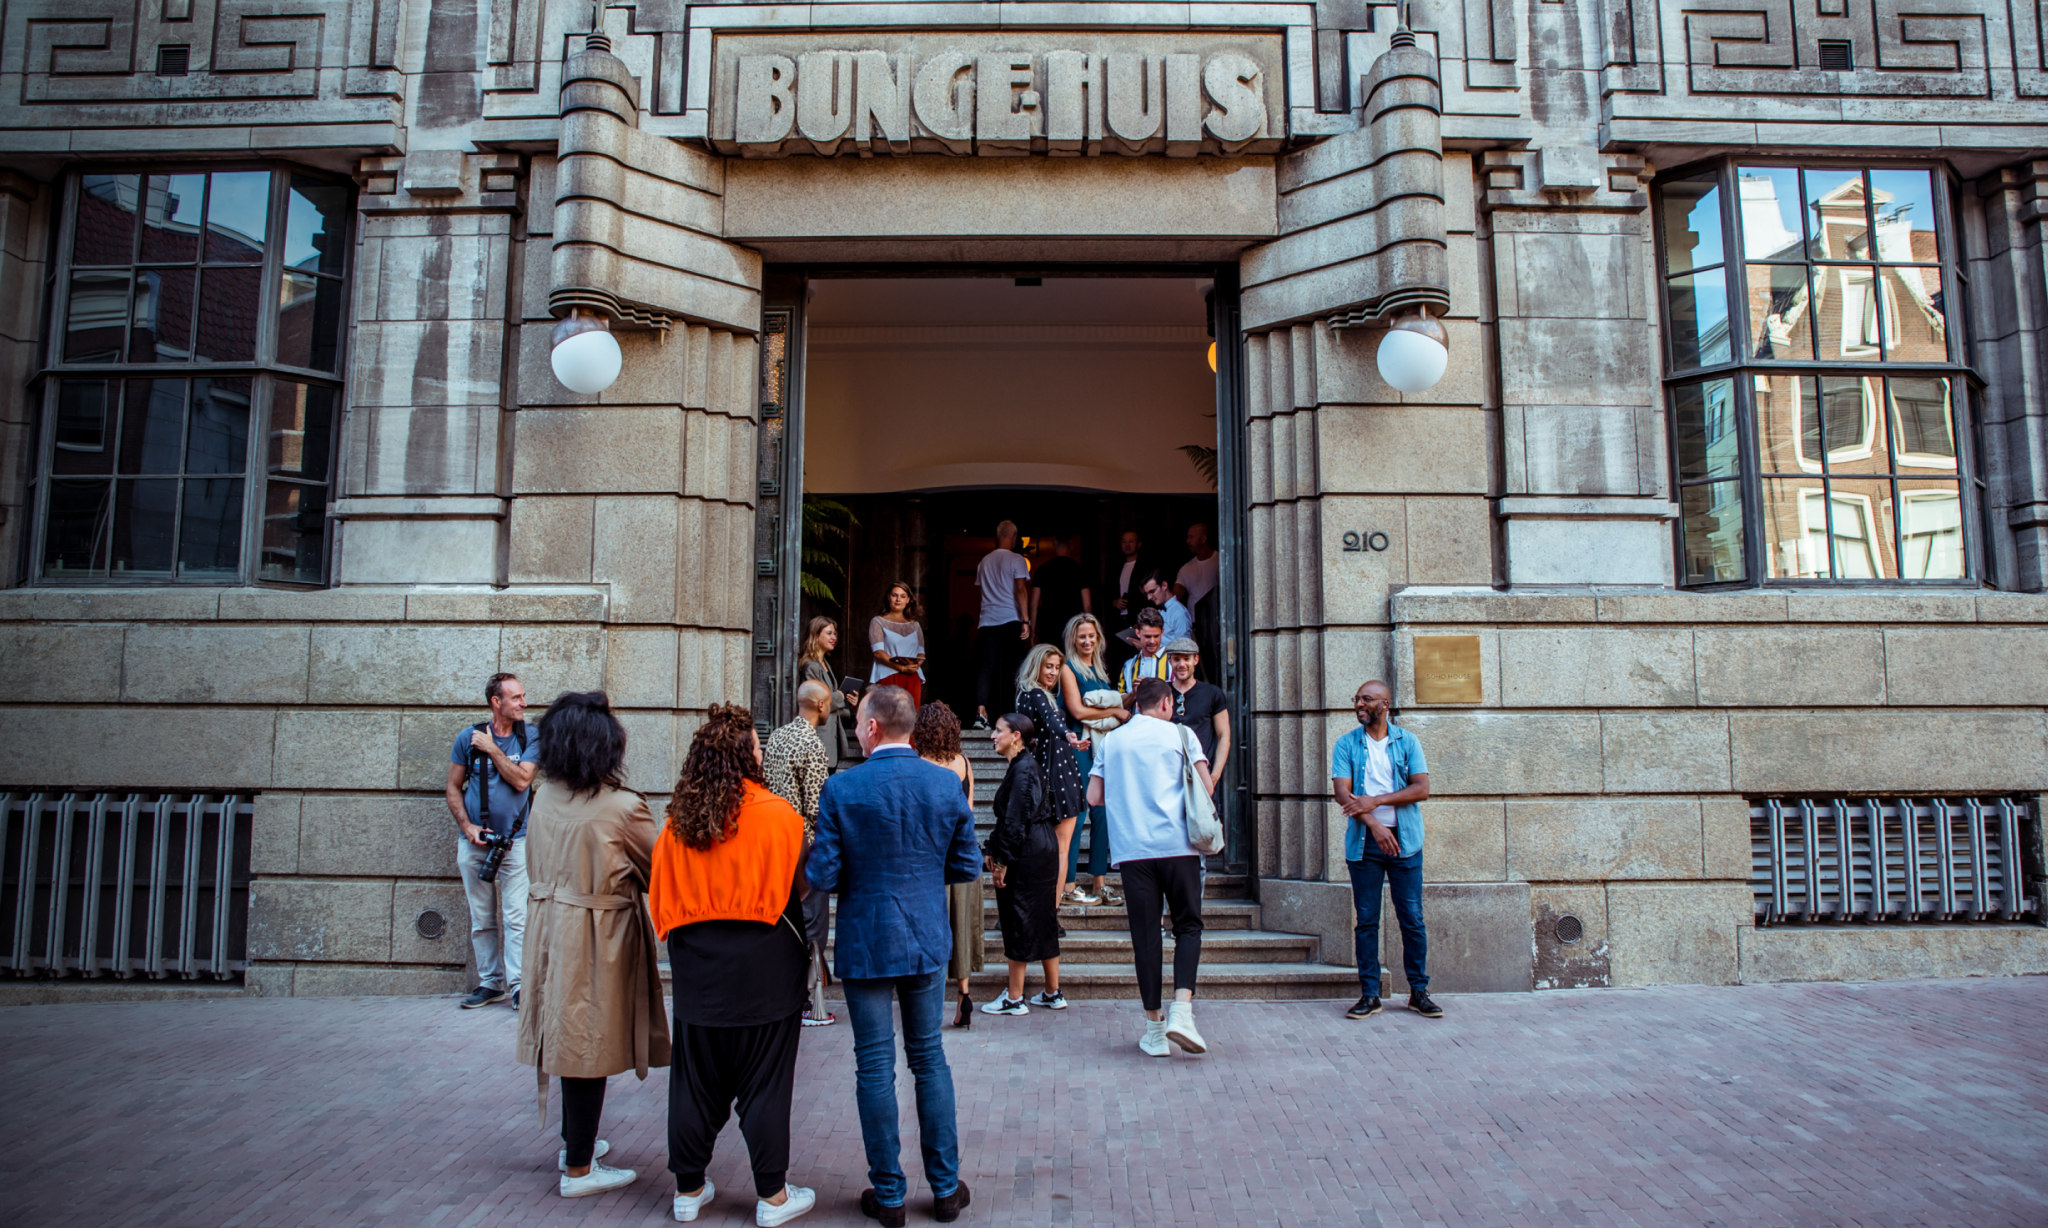 People mingle outside an entrance to a building with Bungehuis written above the doorway.